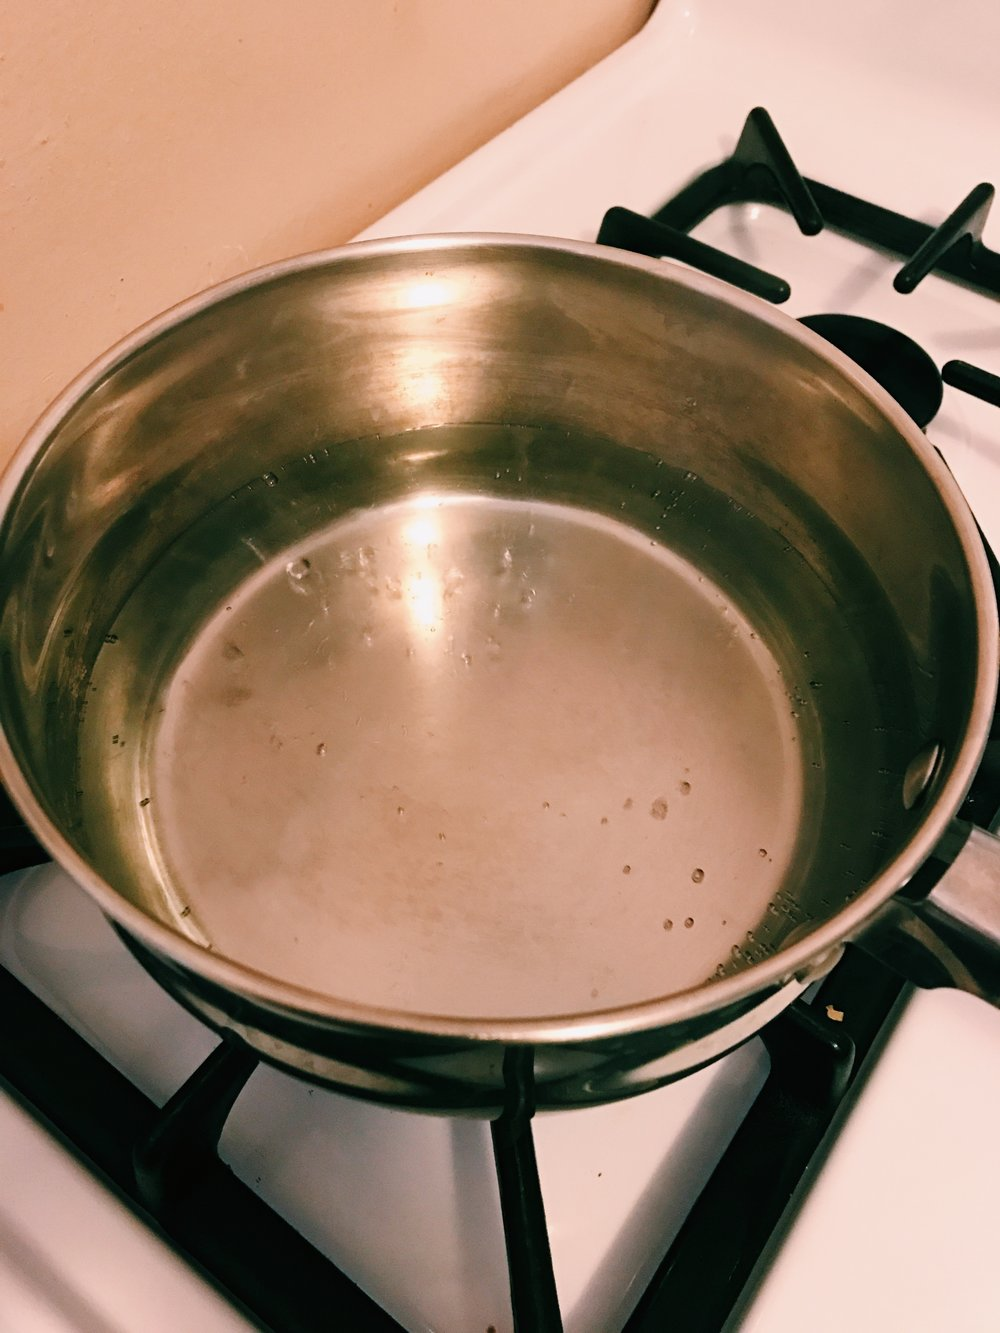 Simmering water of the Bain Marie